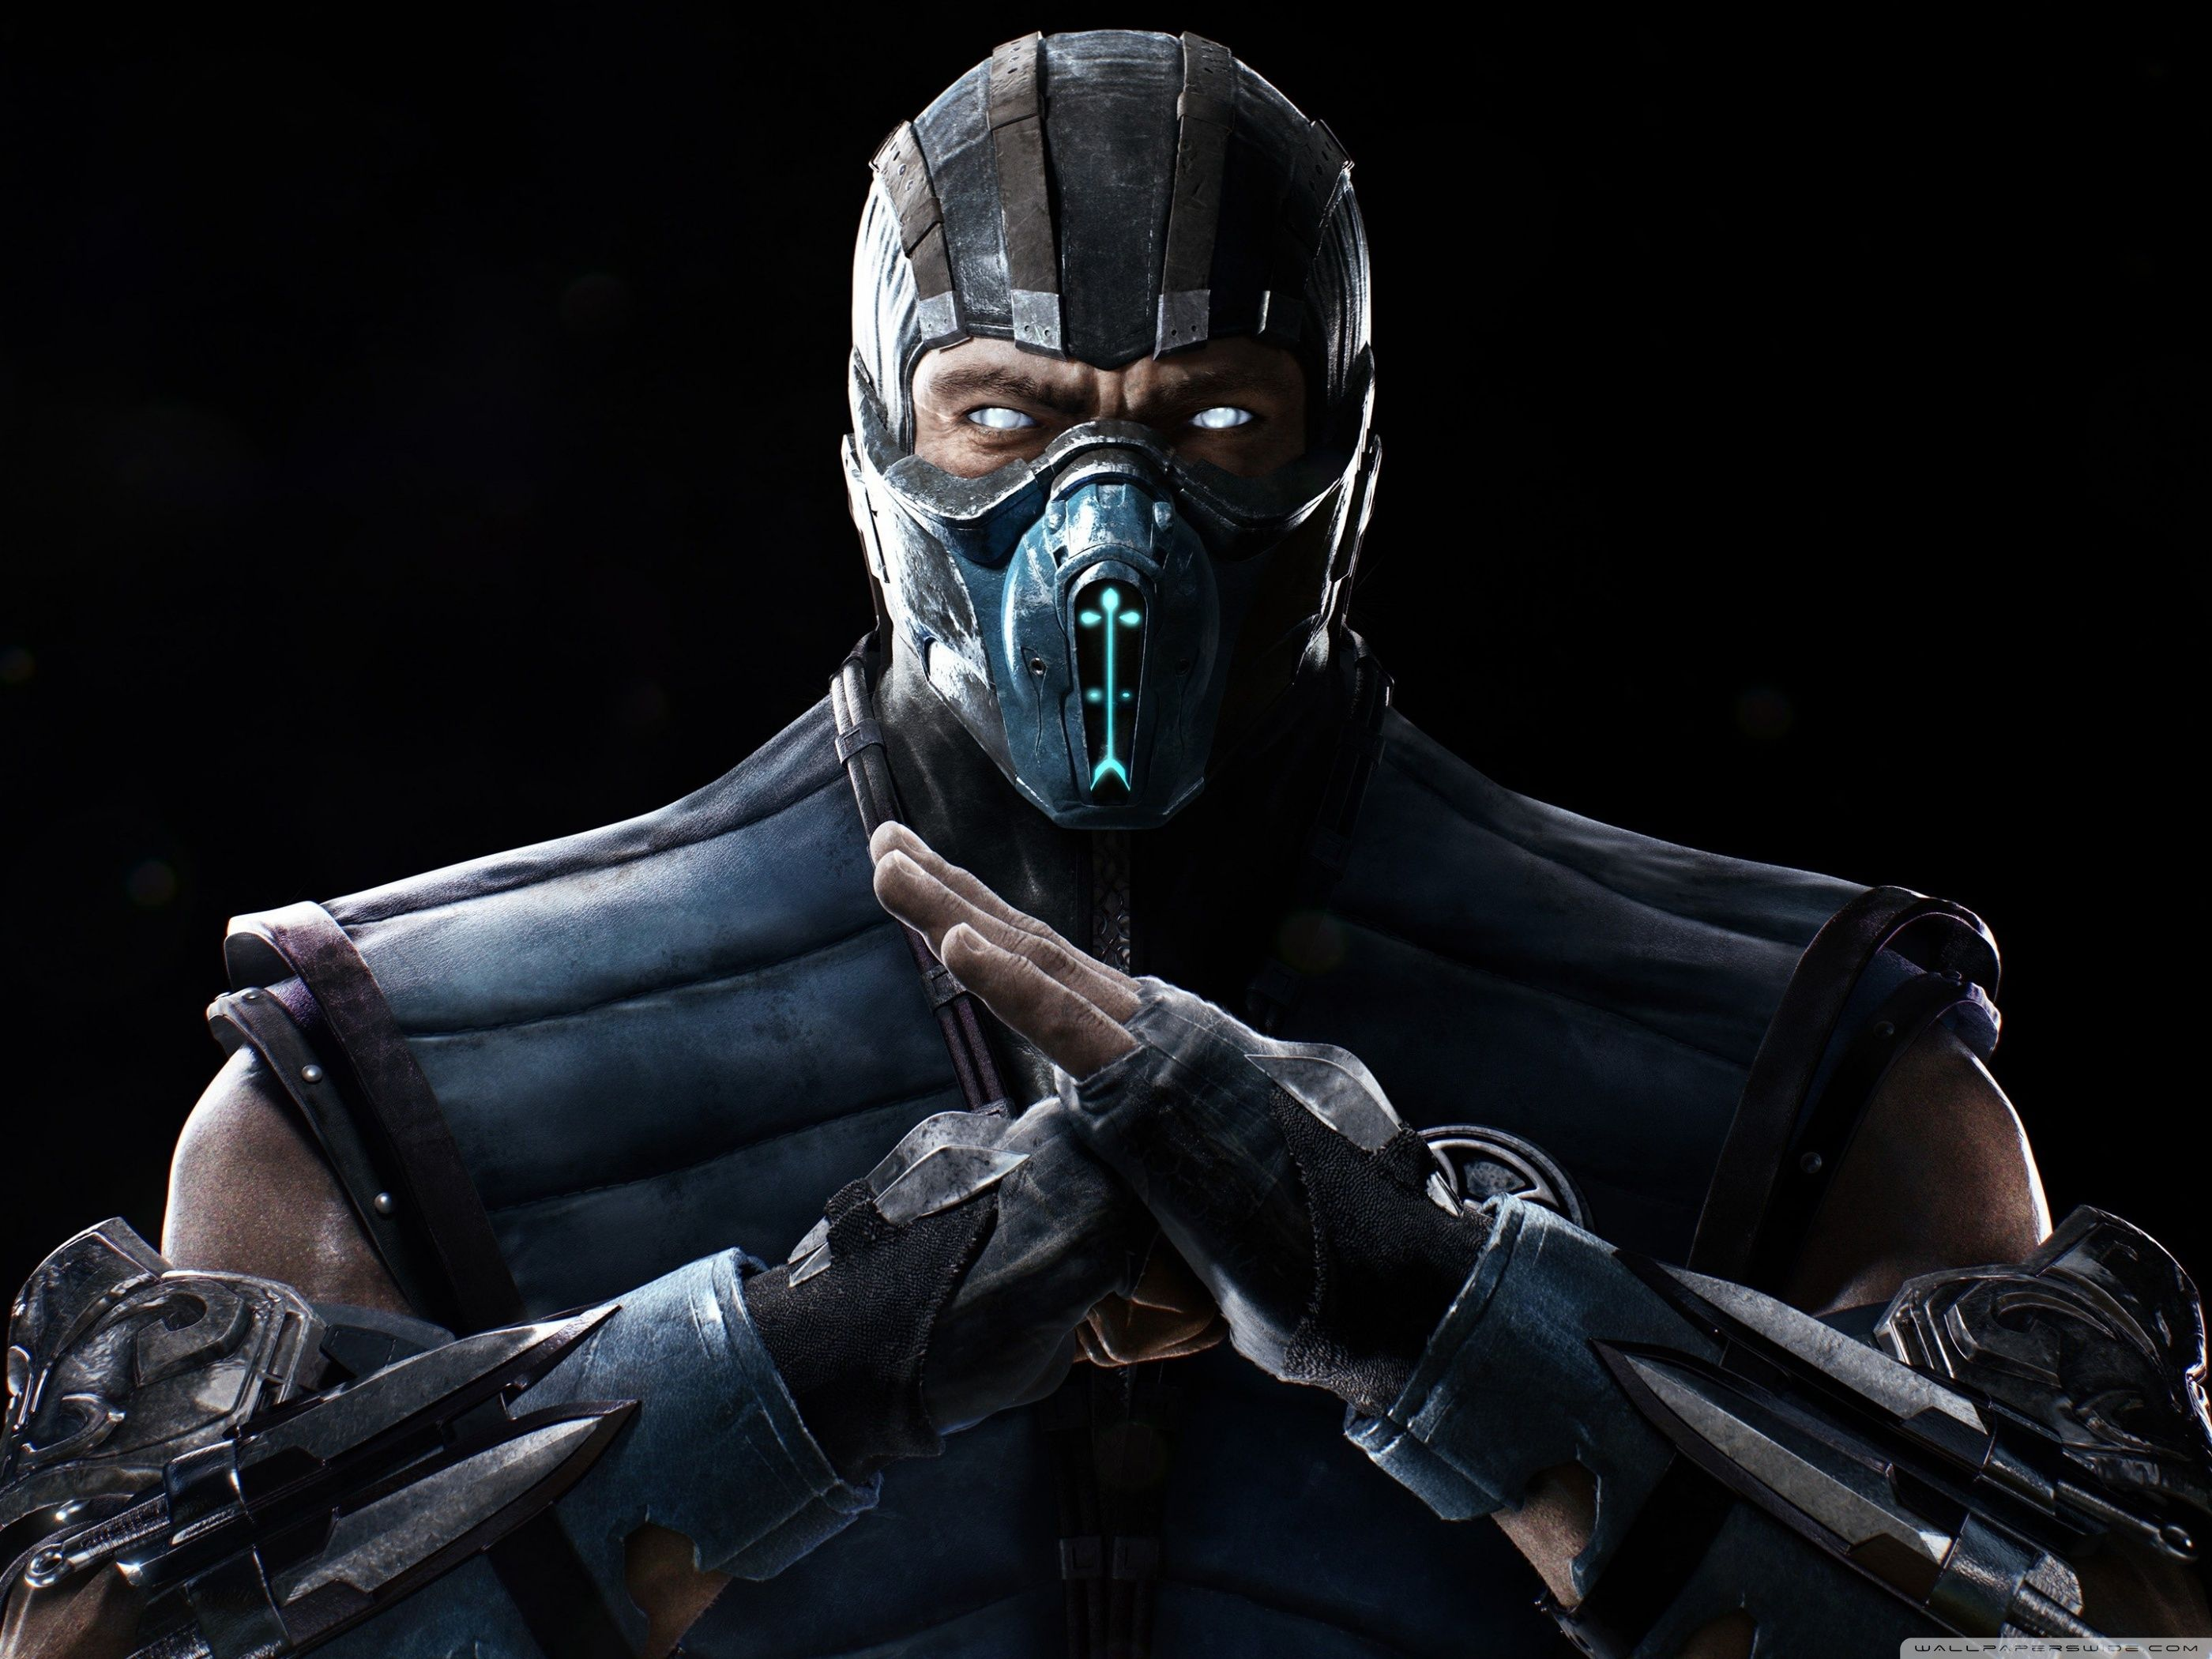 Mortal Kombat X Sub Zero Wallpapers Top Free Mortal Kombat X Sub